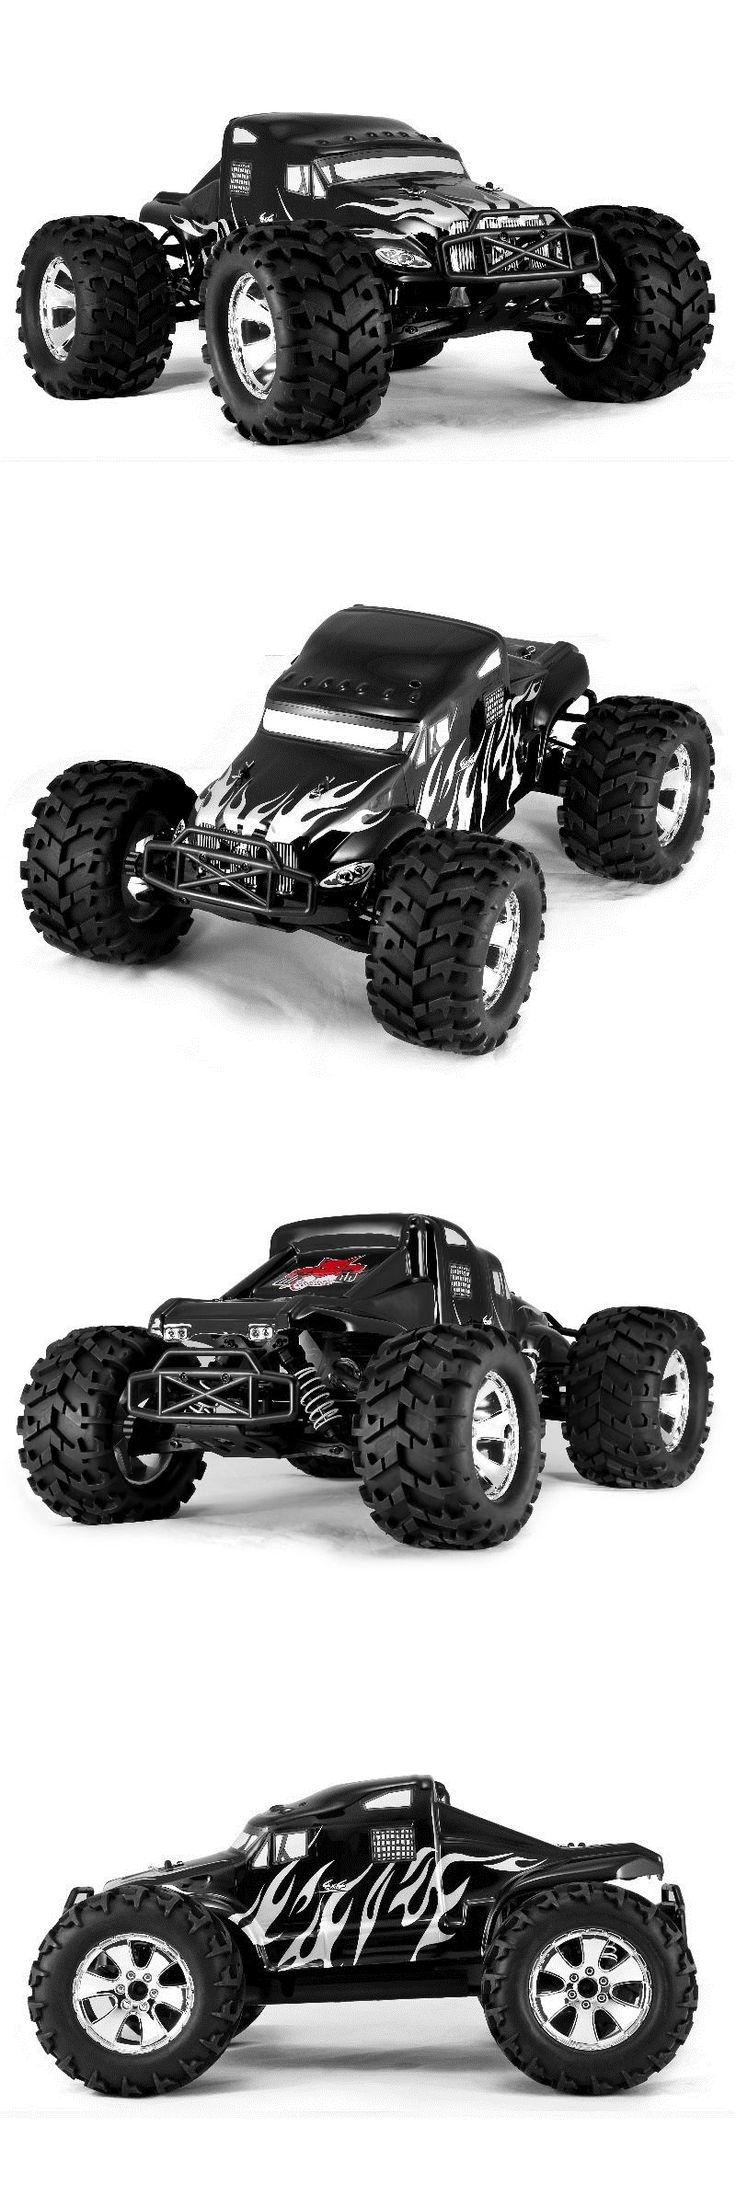 Cars Trucks and Motorcycles 182183: Redcat Racing Earthquake 3.5 1 8 Scale Nitro Monster Truck Semi 2 Speed 4X4 Rc -> BUY IT NOW ONLY: $269.99 on eBay!